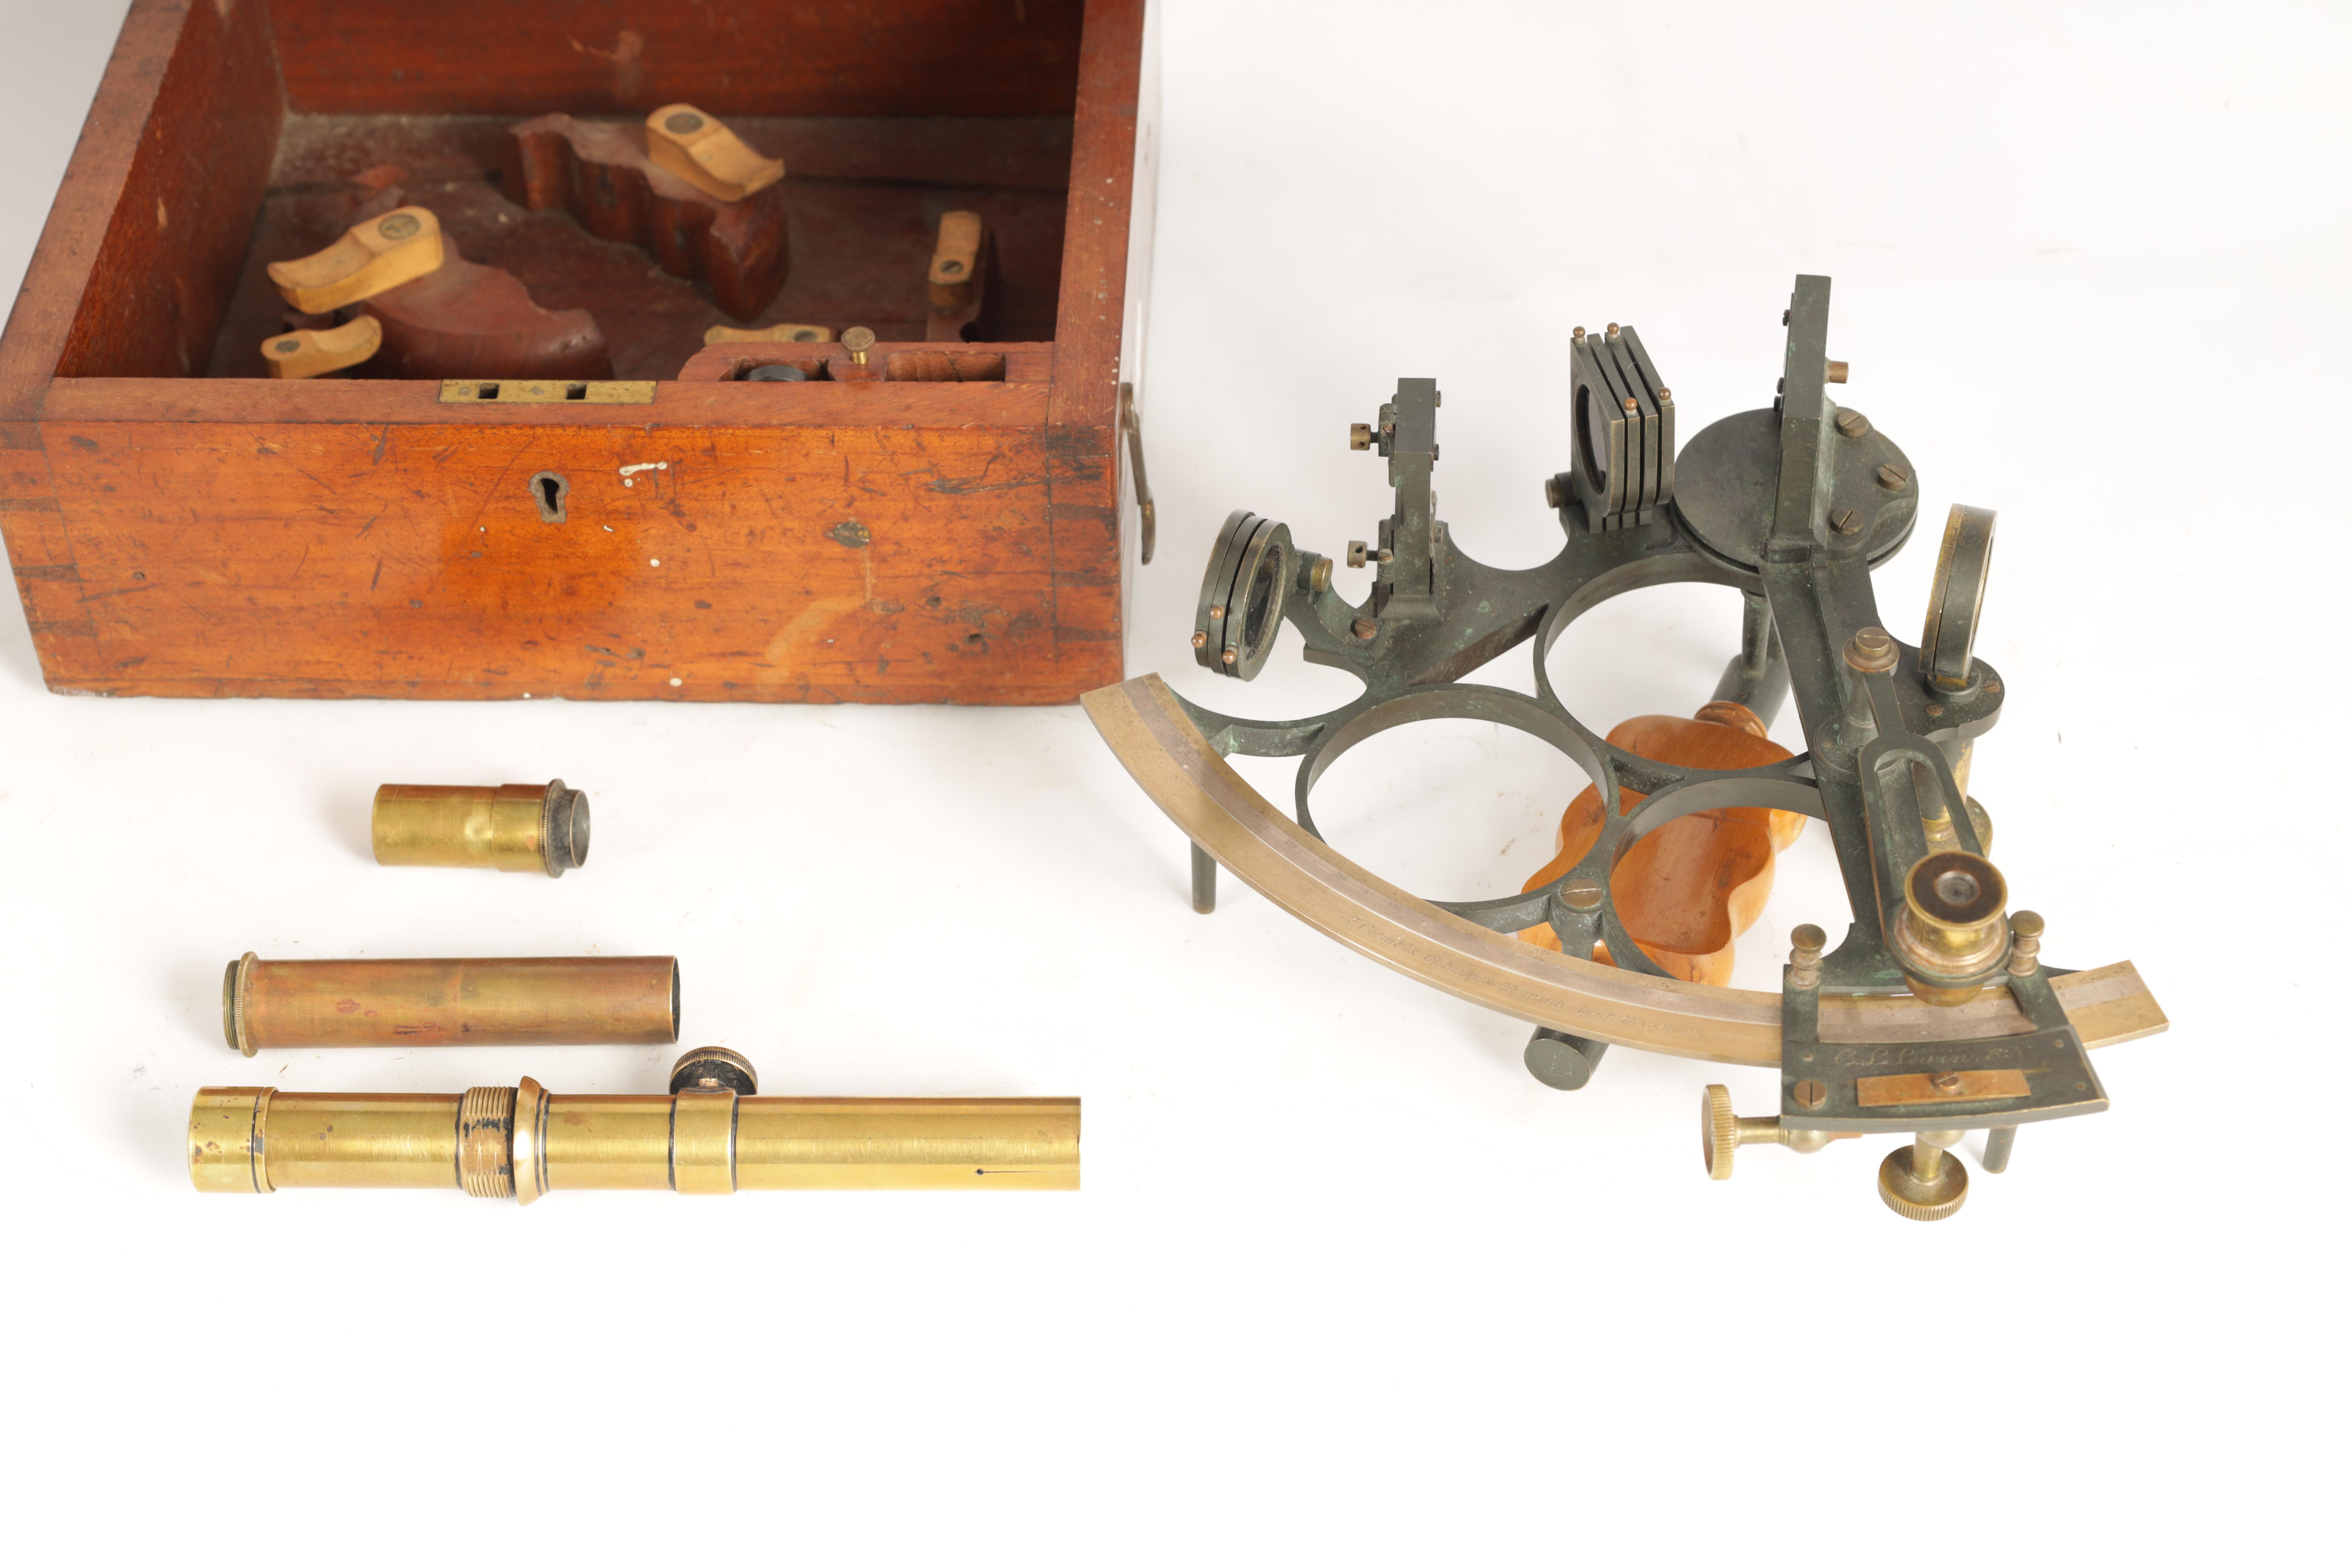 J. COOMBES, OPTICIAN & ADMIRALTY AGENT, DEVONPORT. A LATE 19TH CENTURY BRASS FRAMED SEXTANT IN - Image 12 of 17